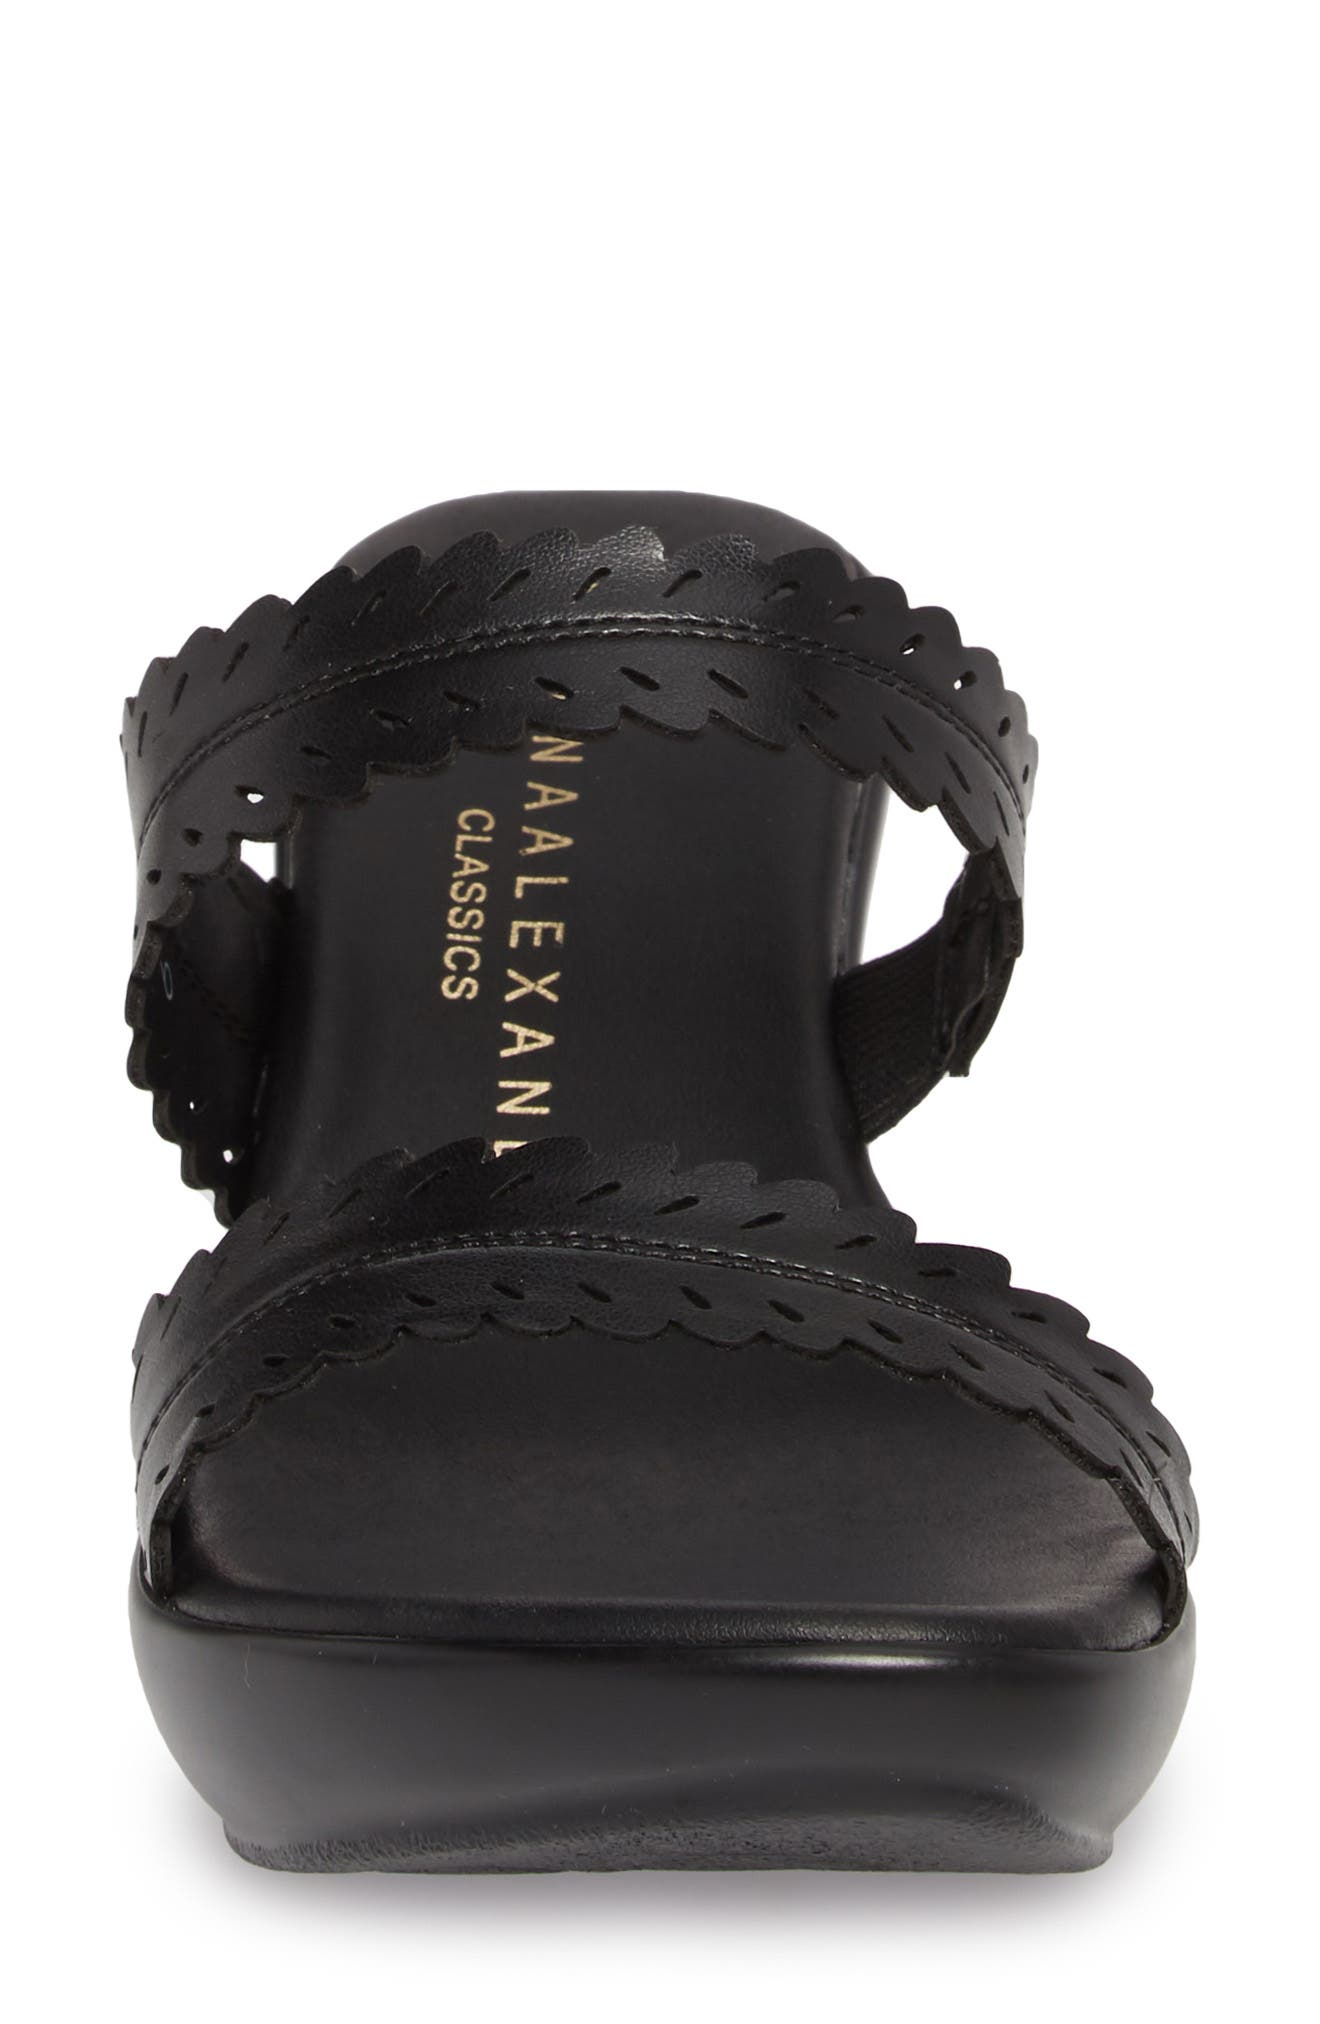 Pouty Wedge Sandal,                             Alternate thumbnail 4, color,                             BLACK FABRIC